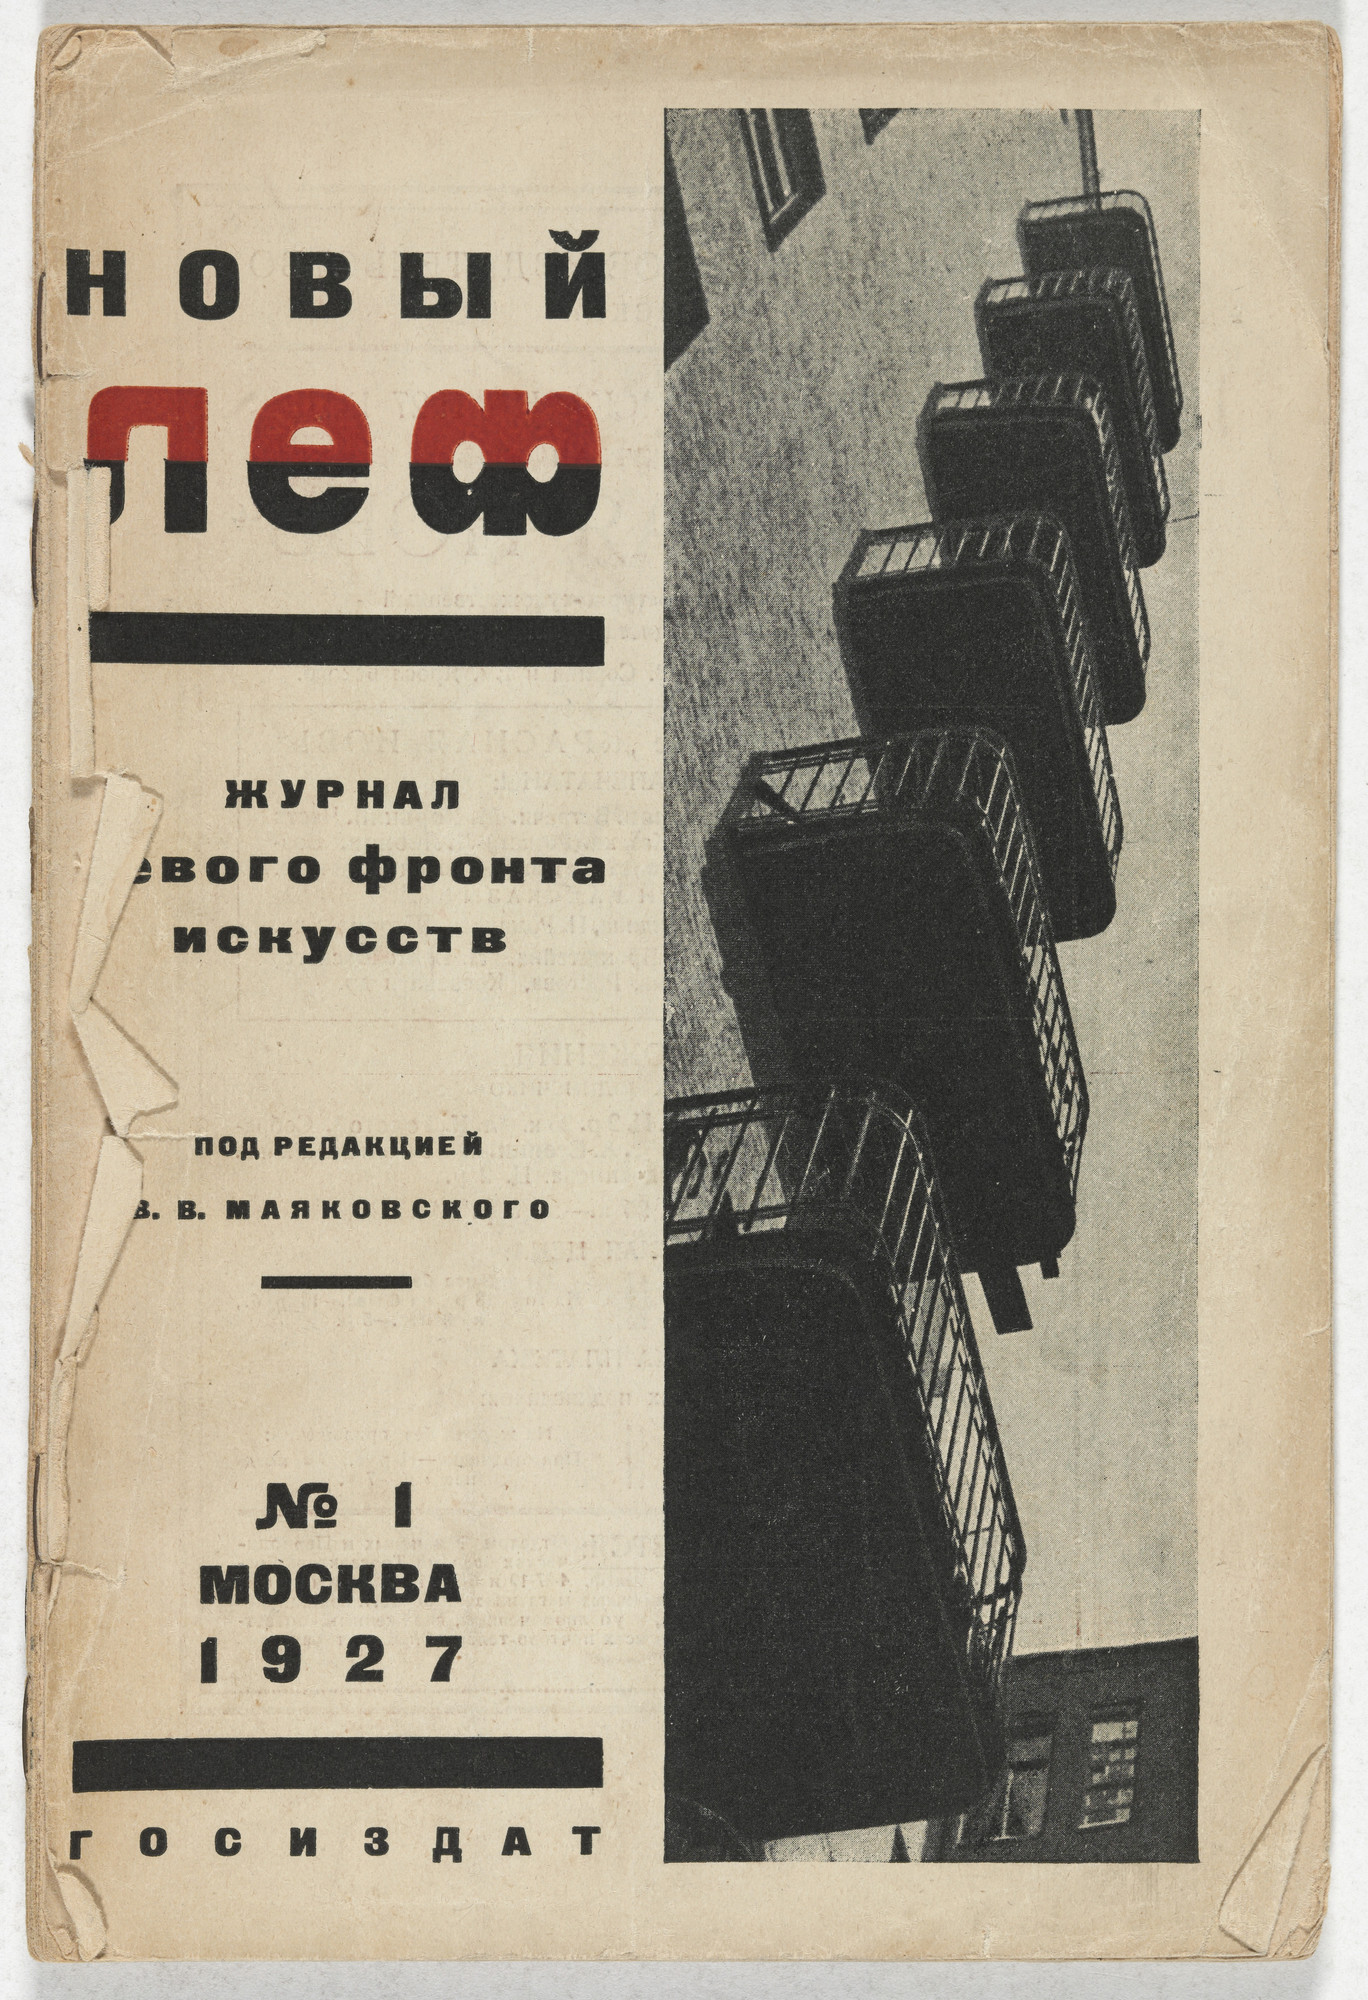 Aleksandr Rodchenko. Novyi LEF. Zhurnal levogo fronta iskusstv (New LEF: Journal of the Left Front of the Arts), no. 1. 1927